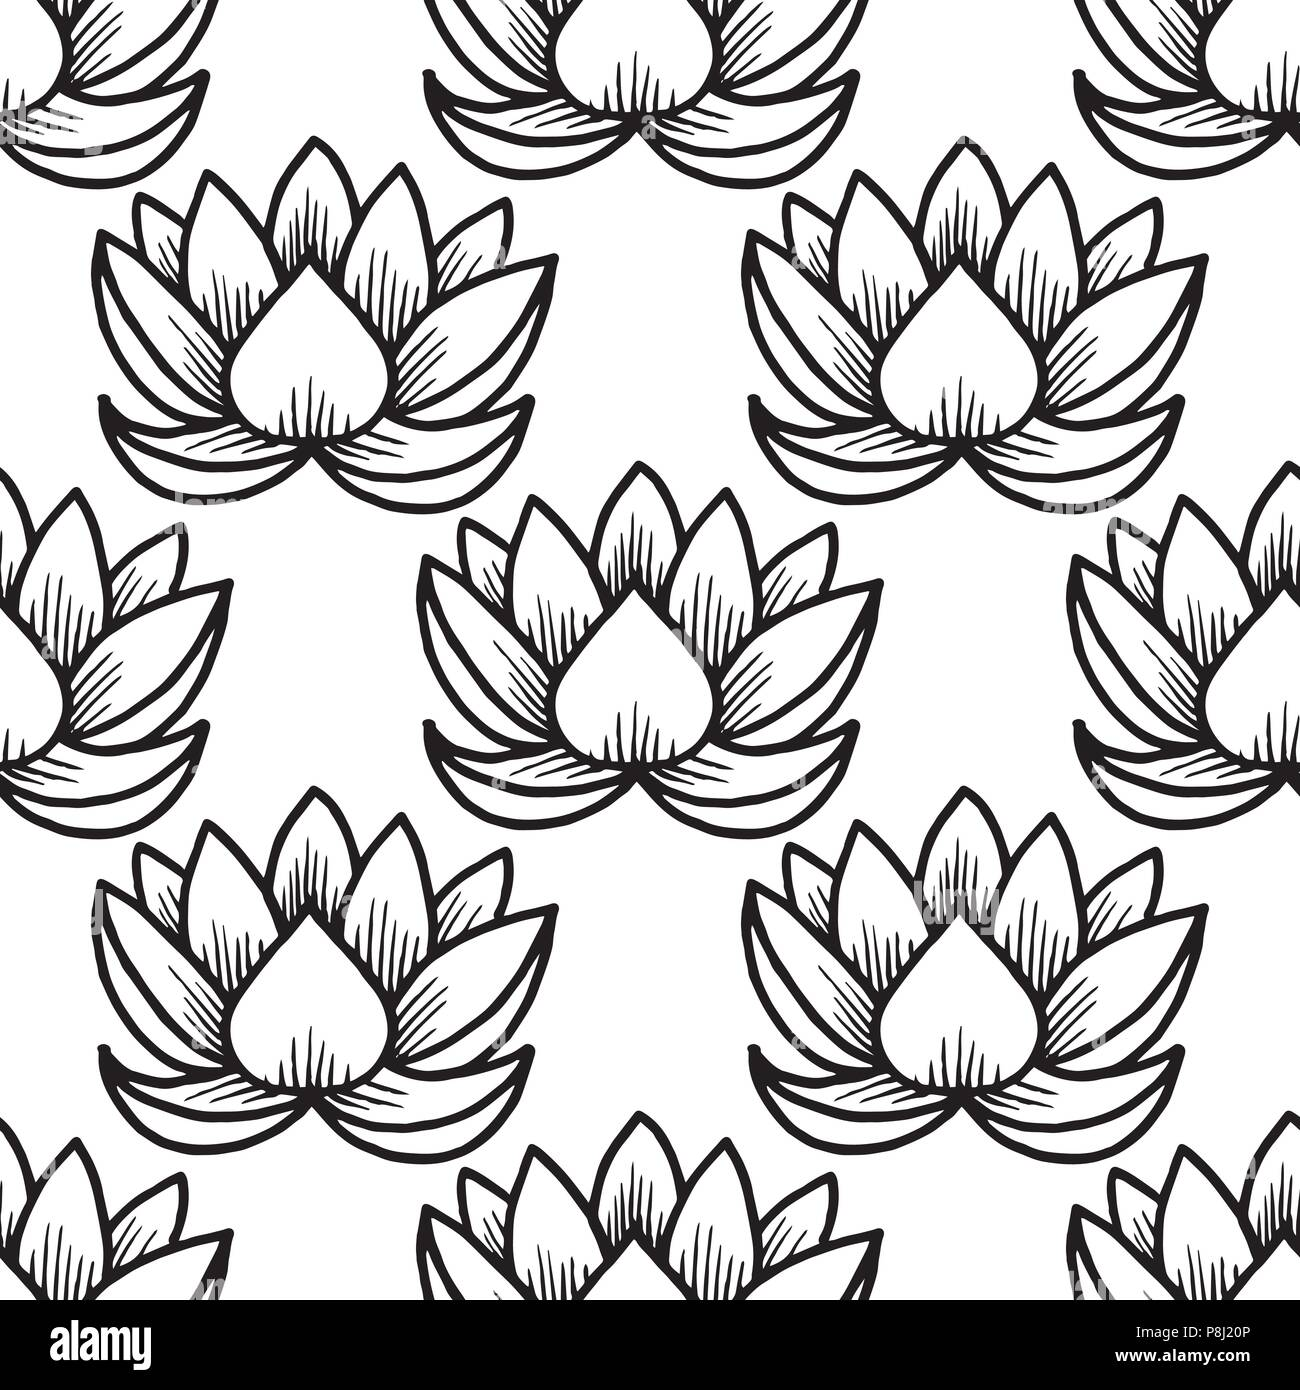 Lotus. Seamless pattern. Oriental Indian Chinese Traditional. White and black - Stock Image